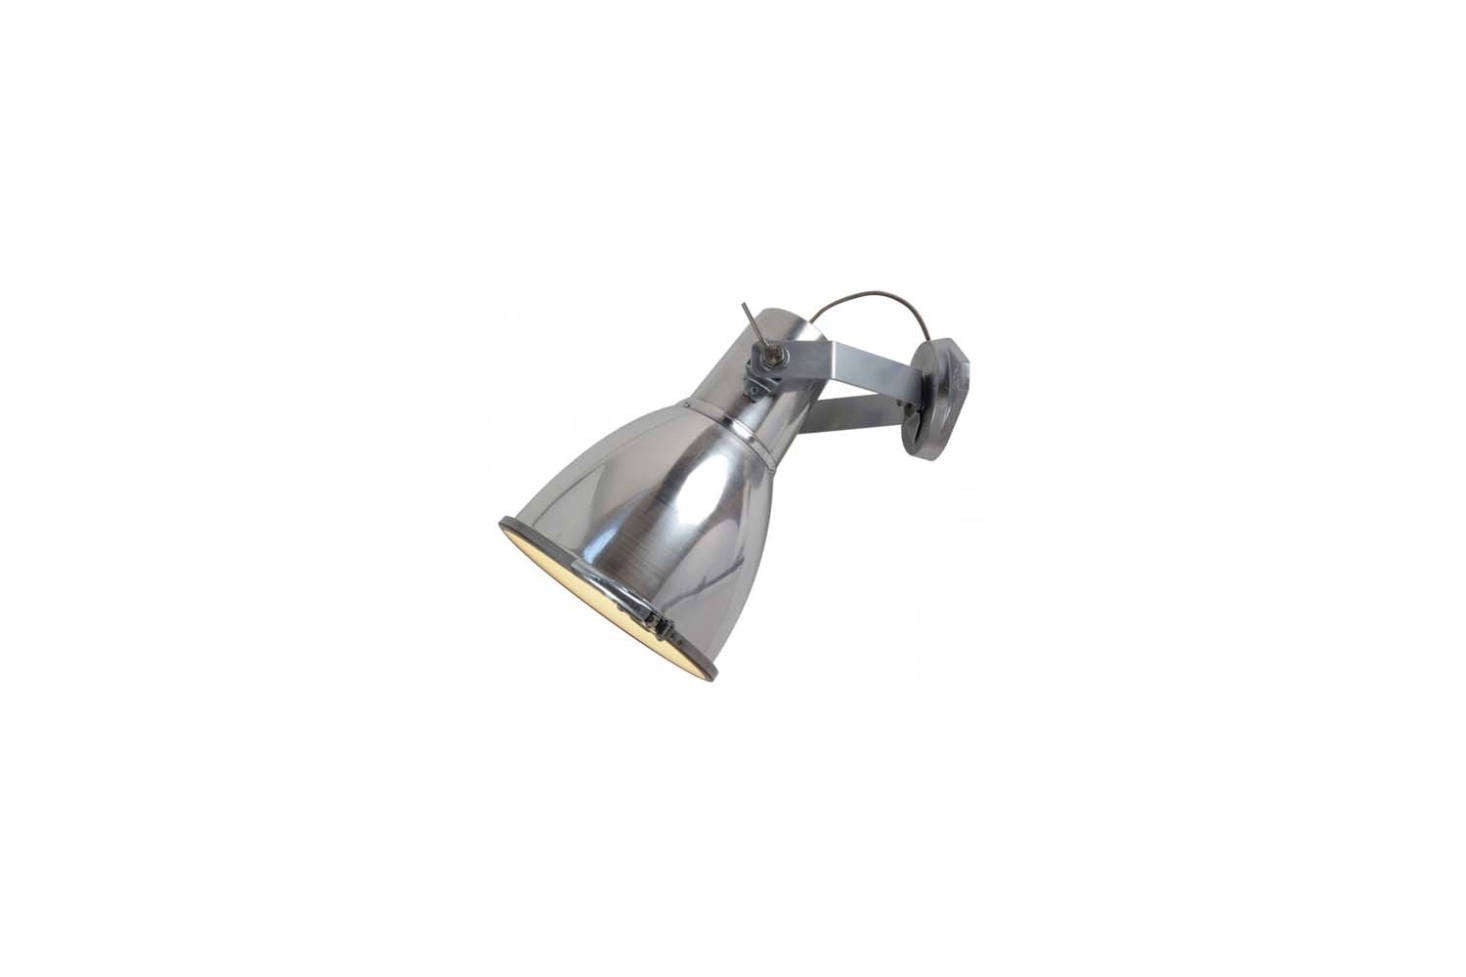 The Original BTC Stirrup 3 Wall Sconce comes in Black or Natural Aluminum (shown) for $885 each at Lightology.